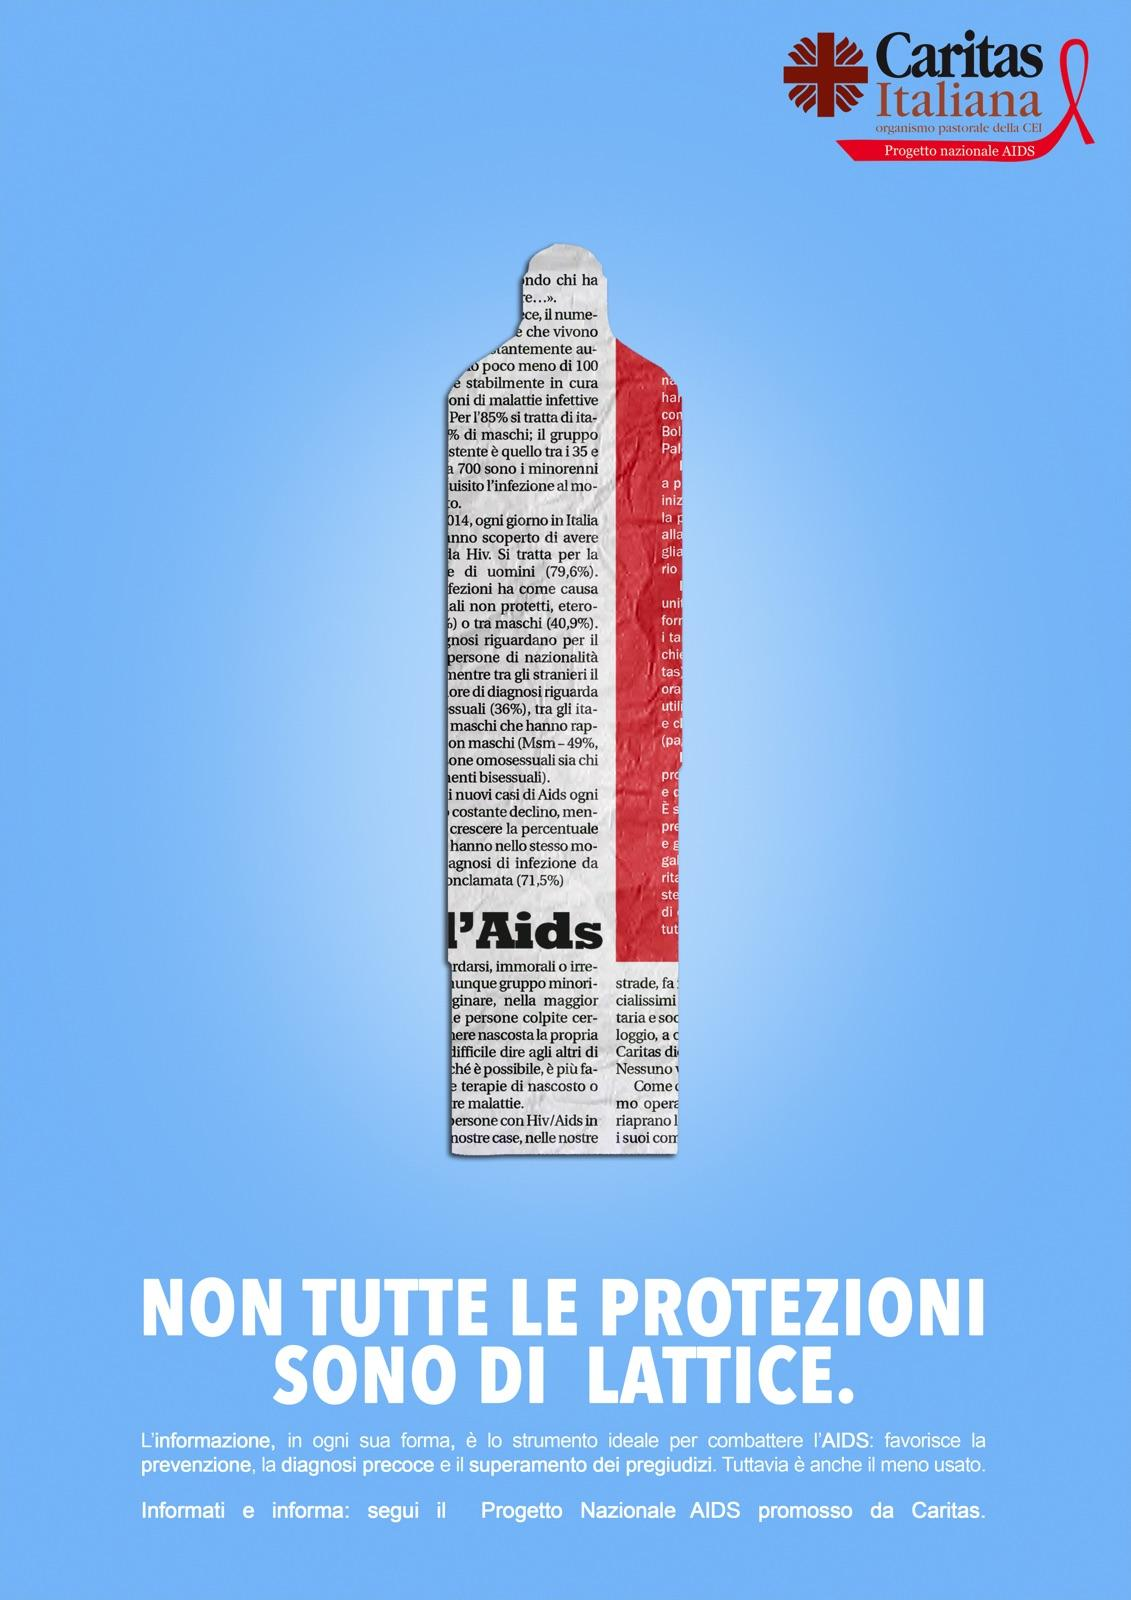 Caritas Italiana Print Ad - Not All Protections Are Made of Latex